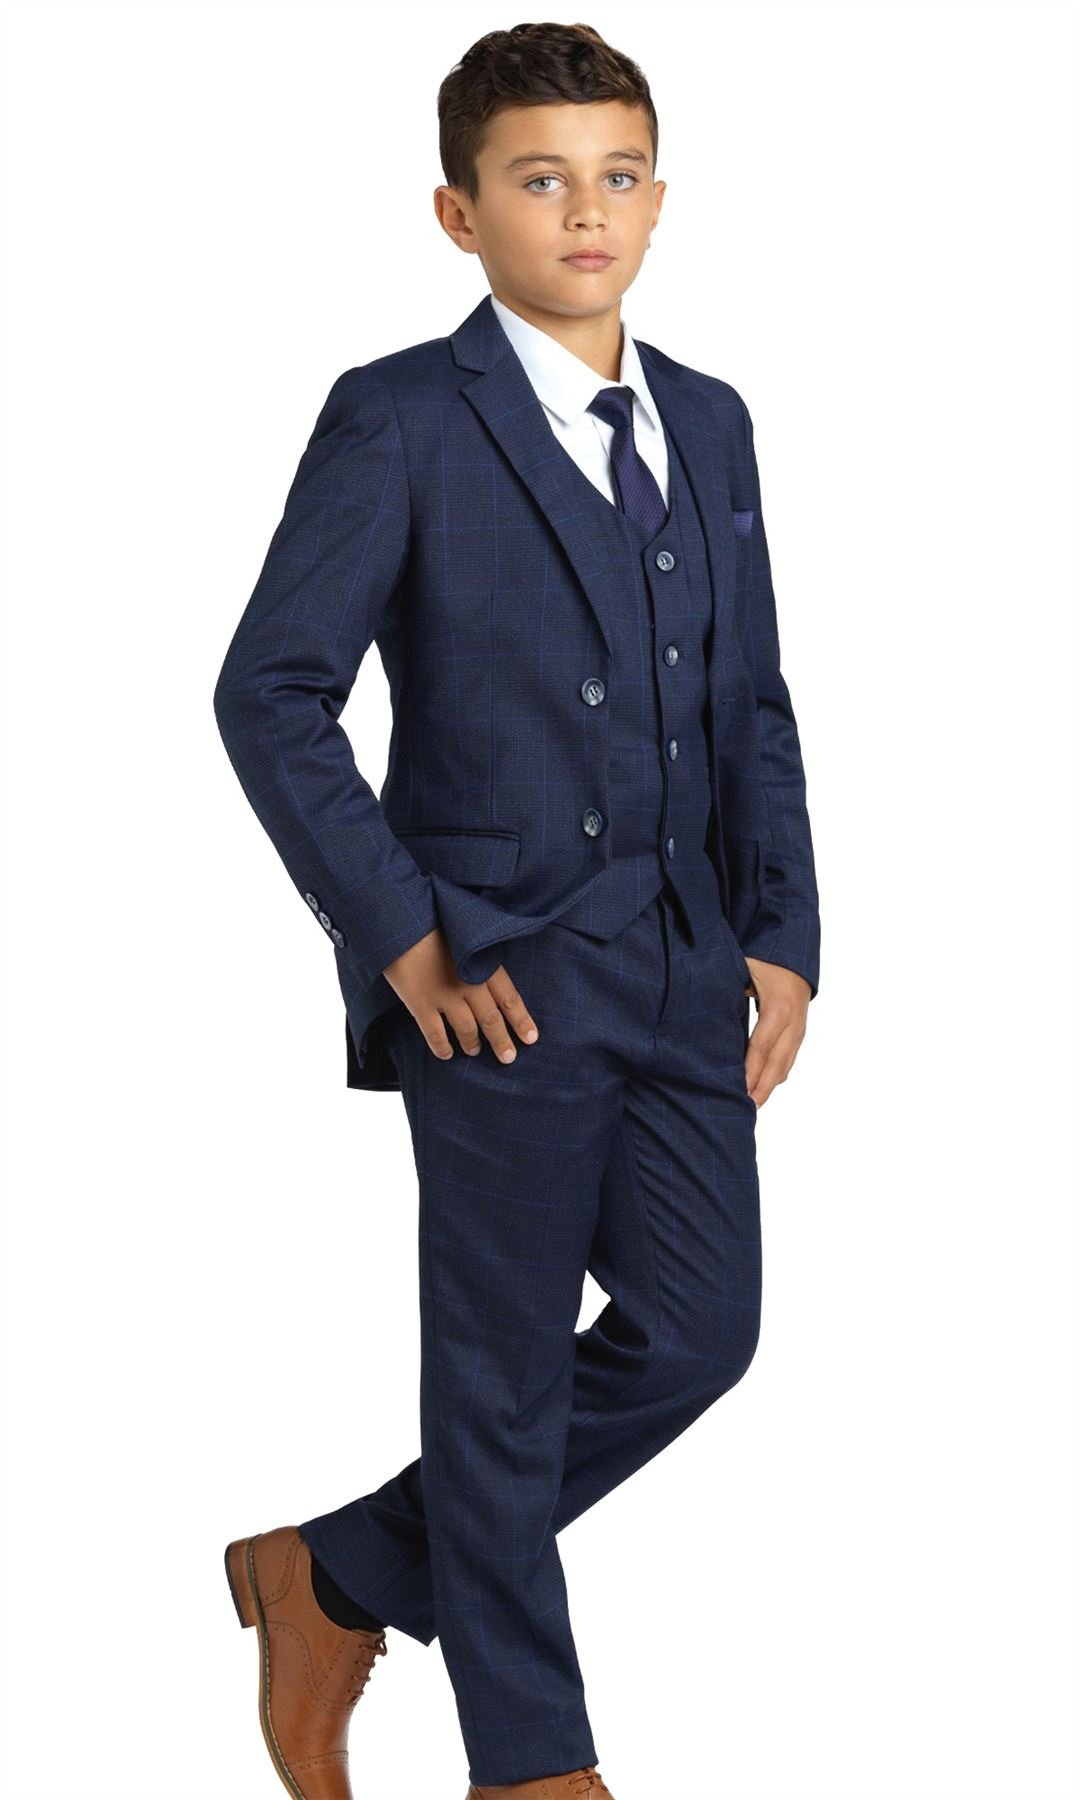 Paisley of London, Henry Navy Check Occasion Wear, Boys Navy Wedding Slim Fit Suit with Shirt and Vest, 6